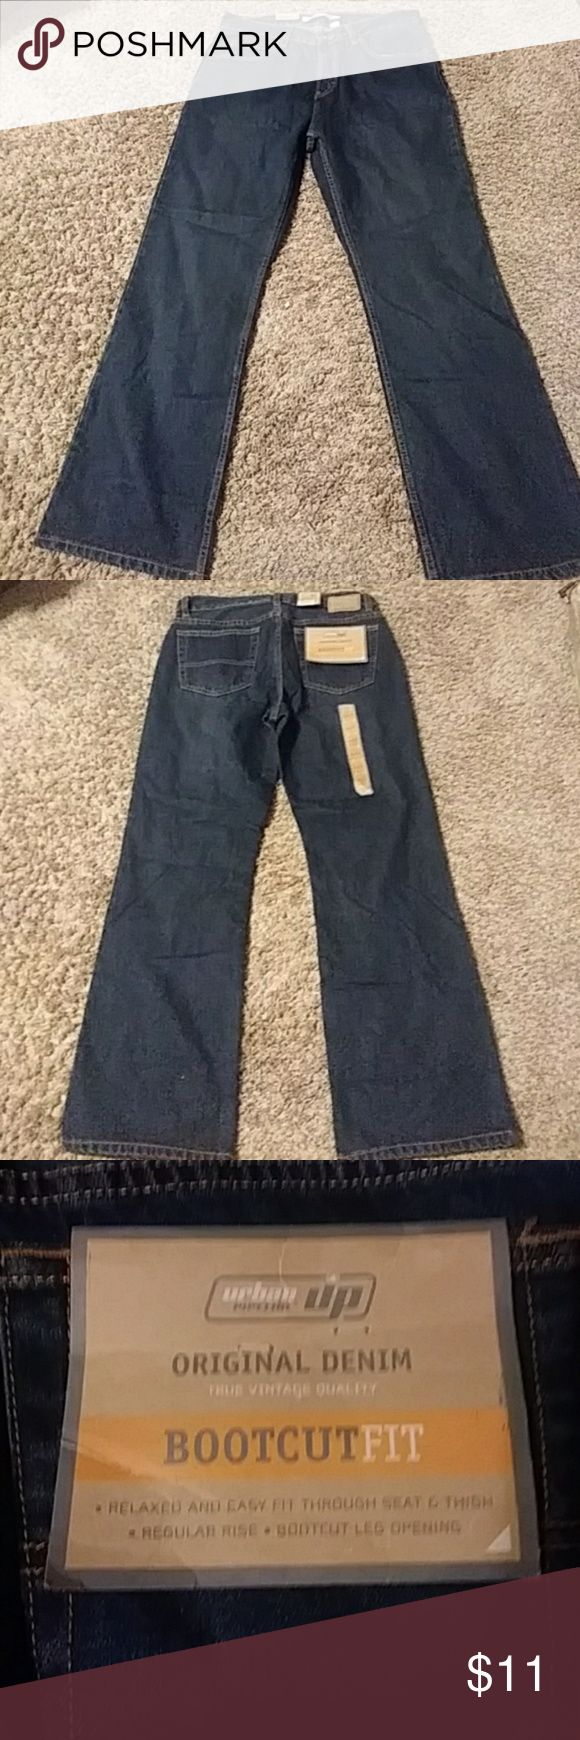 """💞Urban Pipeline Jeans💞 NEW!!  Relaxed, easy fit through the thigh, regular rise, bootcut, 400 dark tint Jeans  from Kohl's.  Size 32 waist and 30"""" length.  BUNDLE AND GET THE MOST OUT OF THE $6.49 SHIPPING FEE!! Urban Pipeline Jeans Bootcut"""